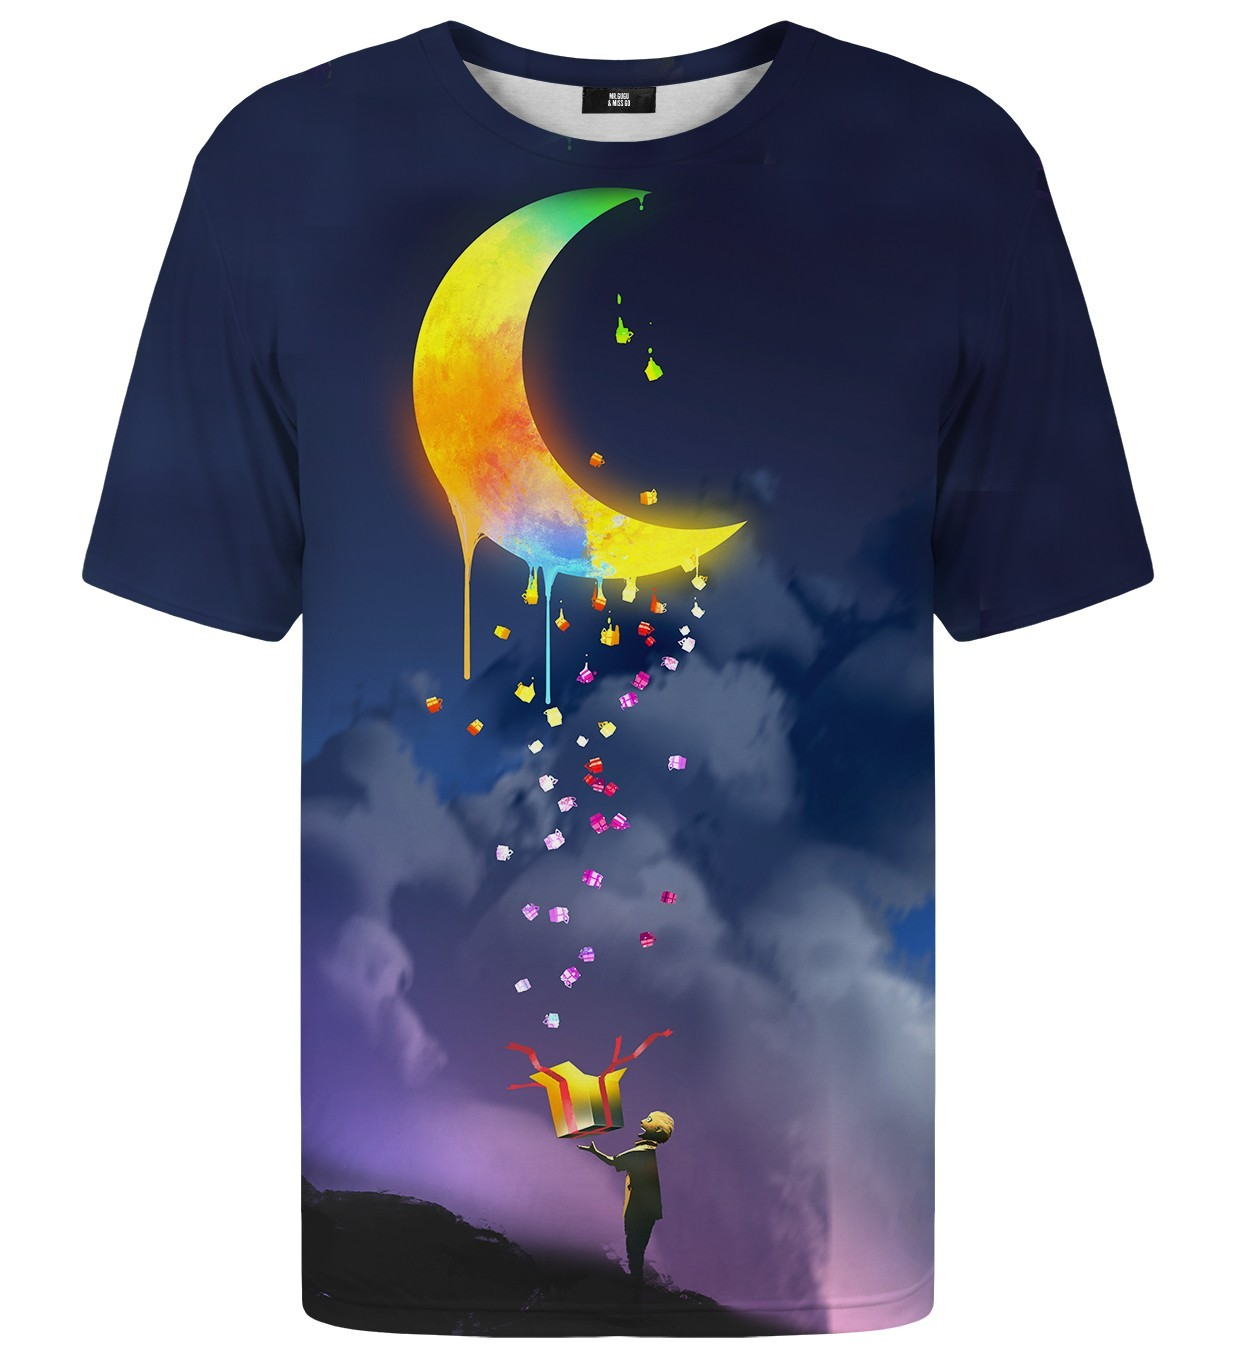 Gifts from the Moon Printed T-Shirt | Unisex | XS-2XL | Mr.Gugu & Miss Go